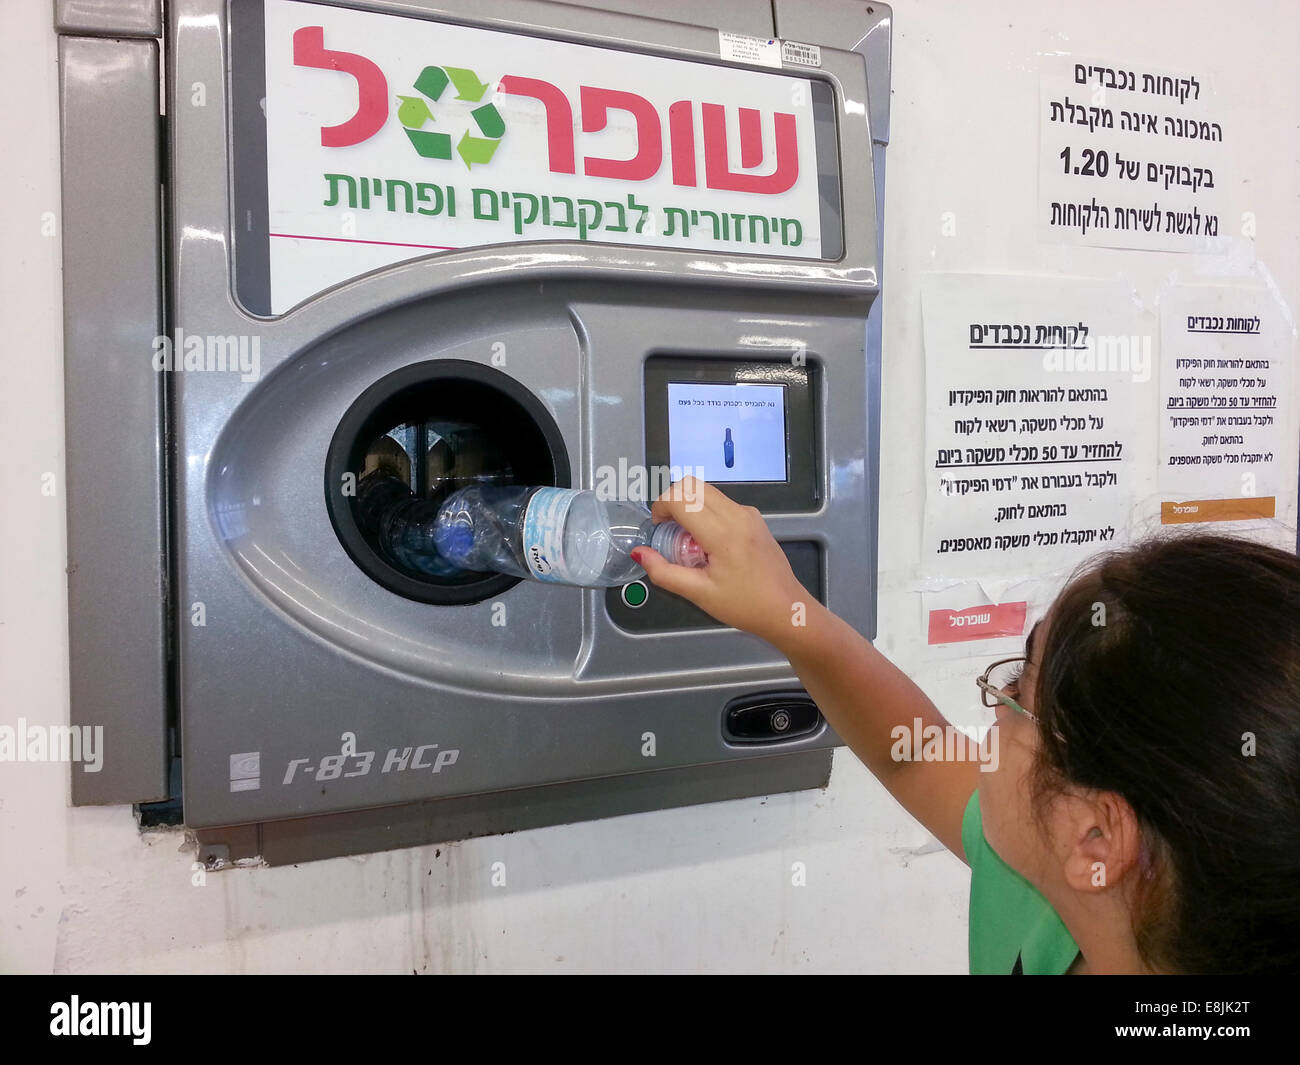 Bottle recycling. Young girl recycles bottles in an automatic machine. Photographed in Israel - Stock Image